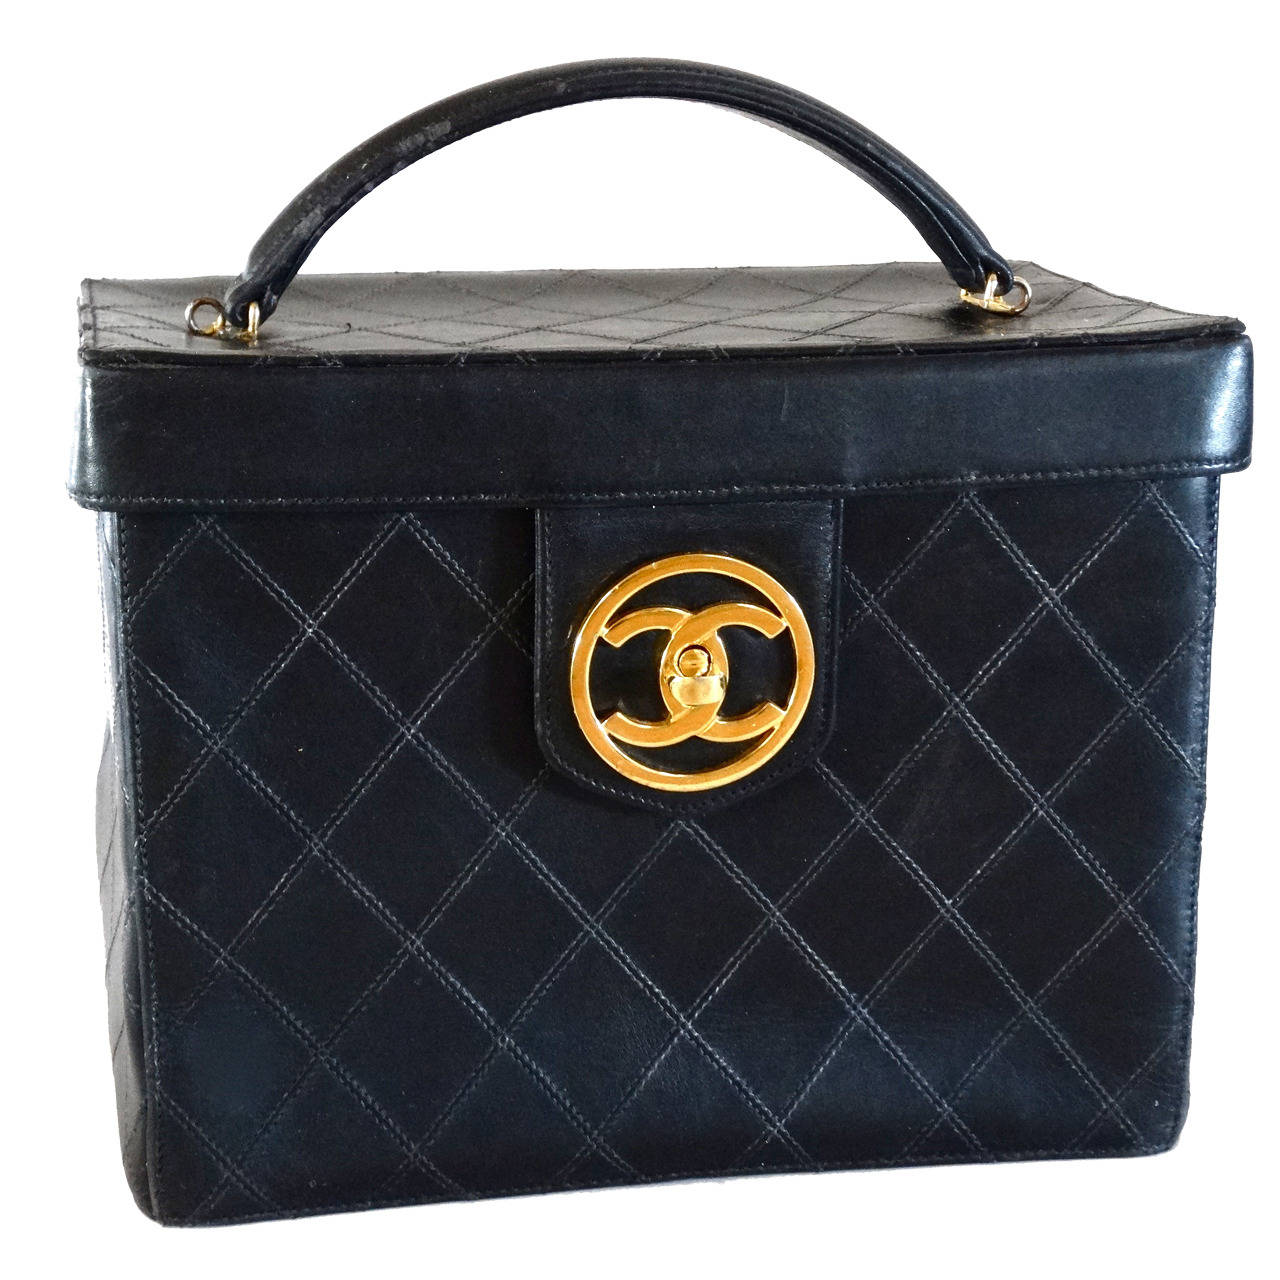 13757856c61291 1980s Chanel Black Quilted Lambskin Vanity Cosmetic Train Case For Sale